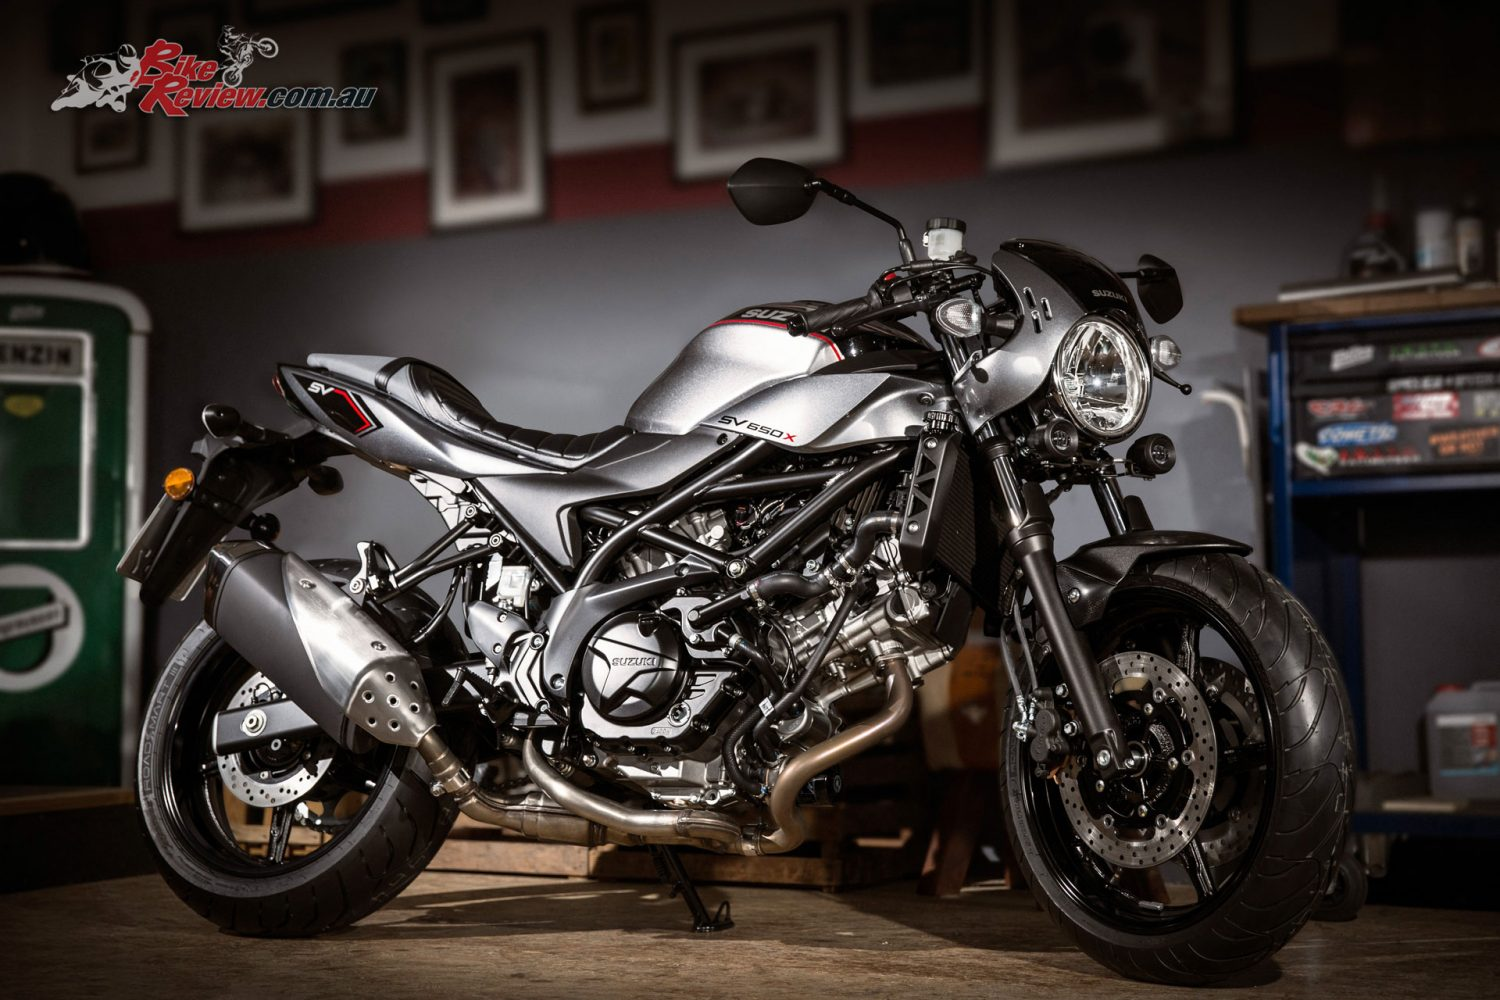 Suzuki Unveil 2018 Sv650X Cafe Racer At Eicma - Bike Review-1701